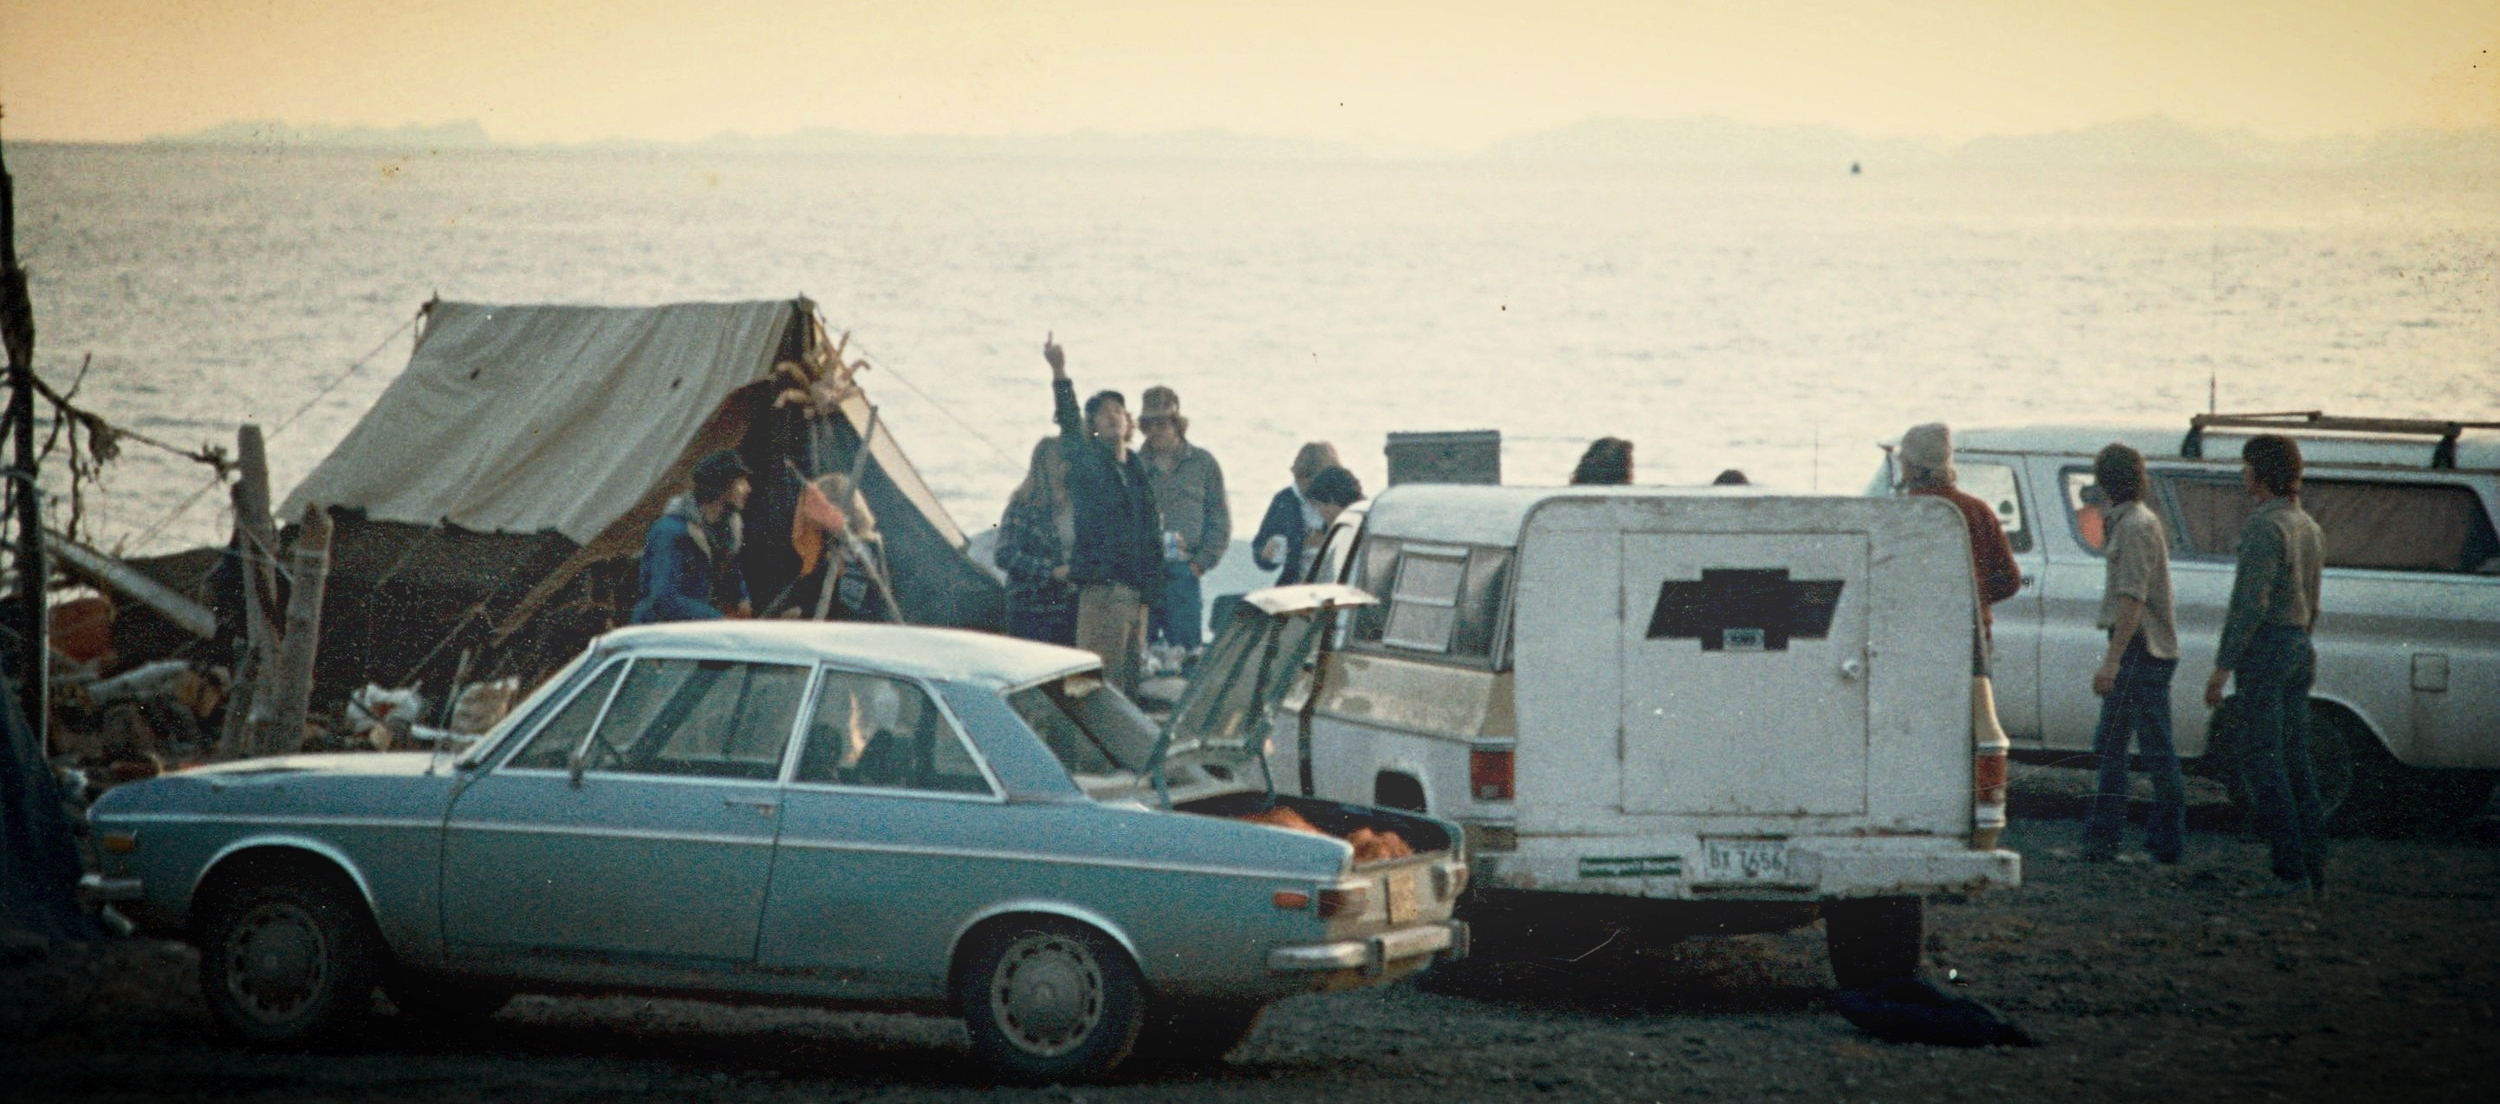 On the Homer Spit in 1982